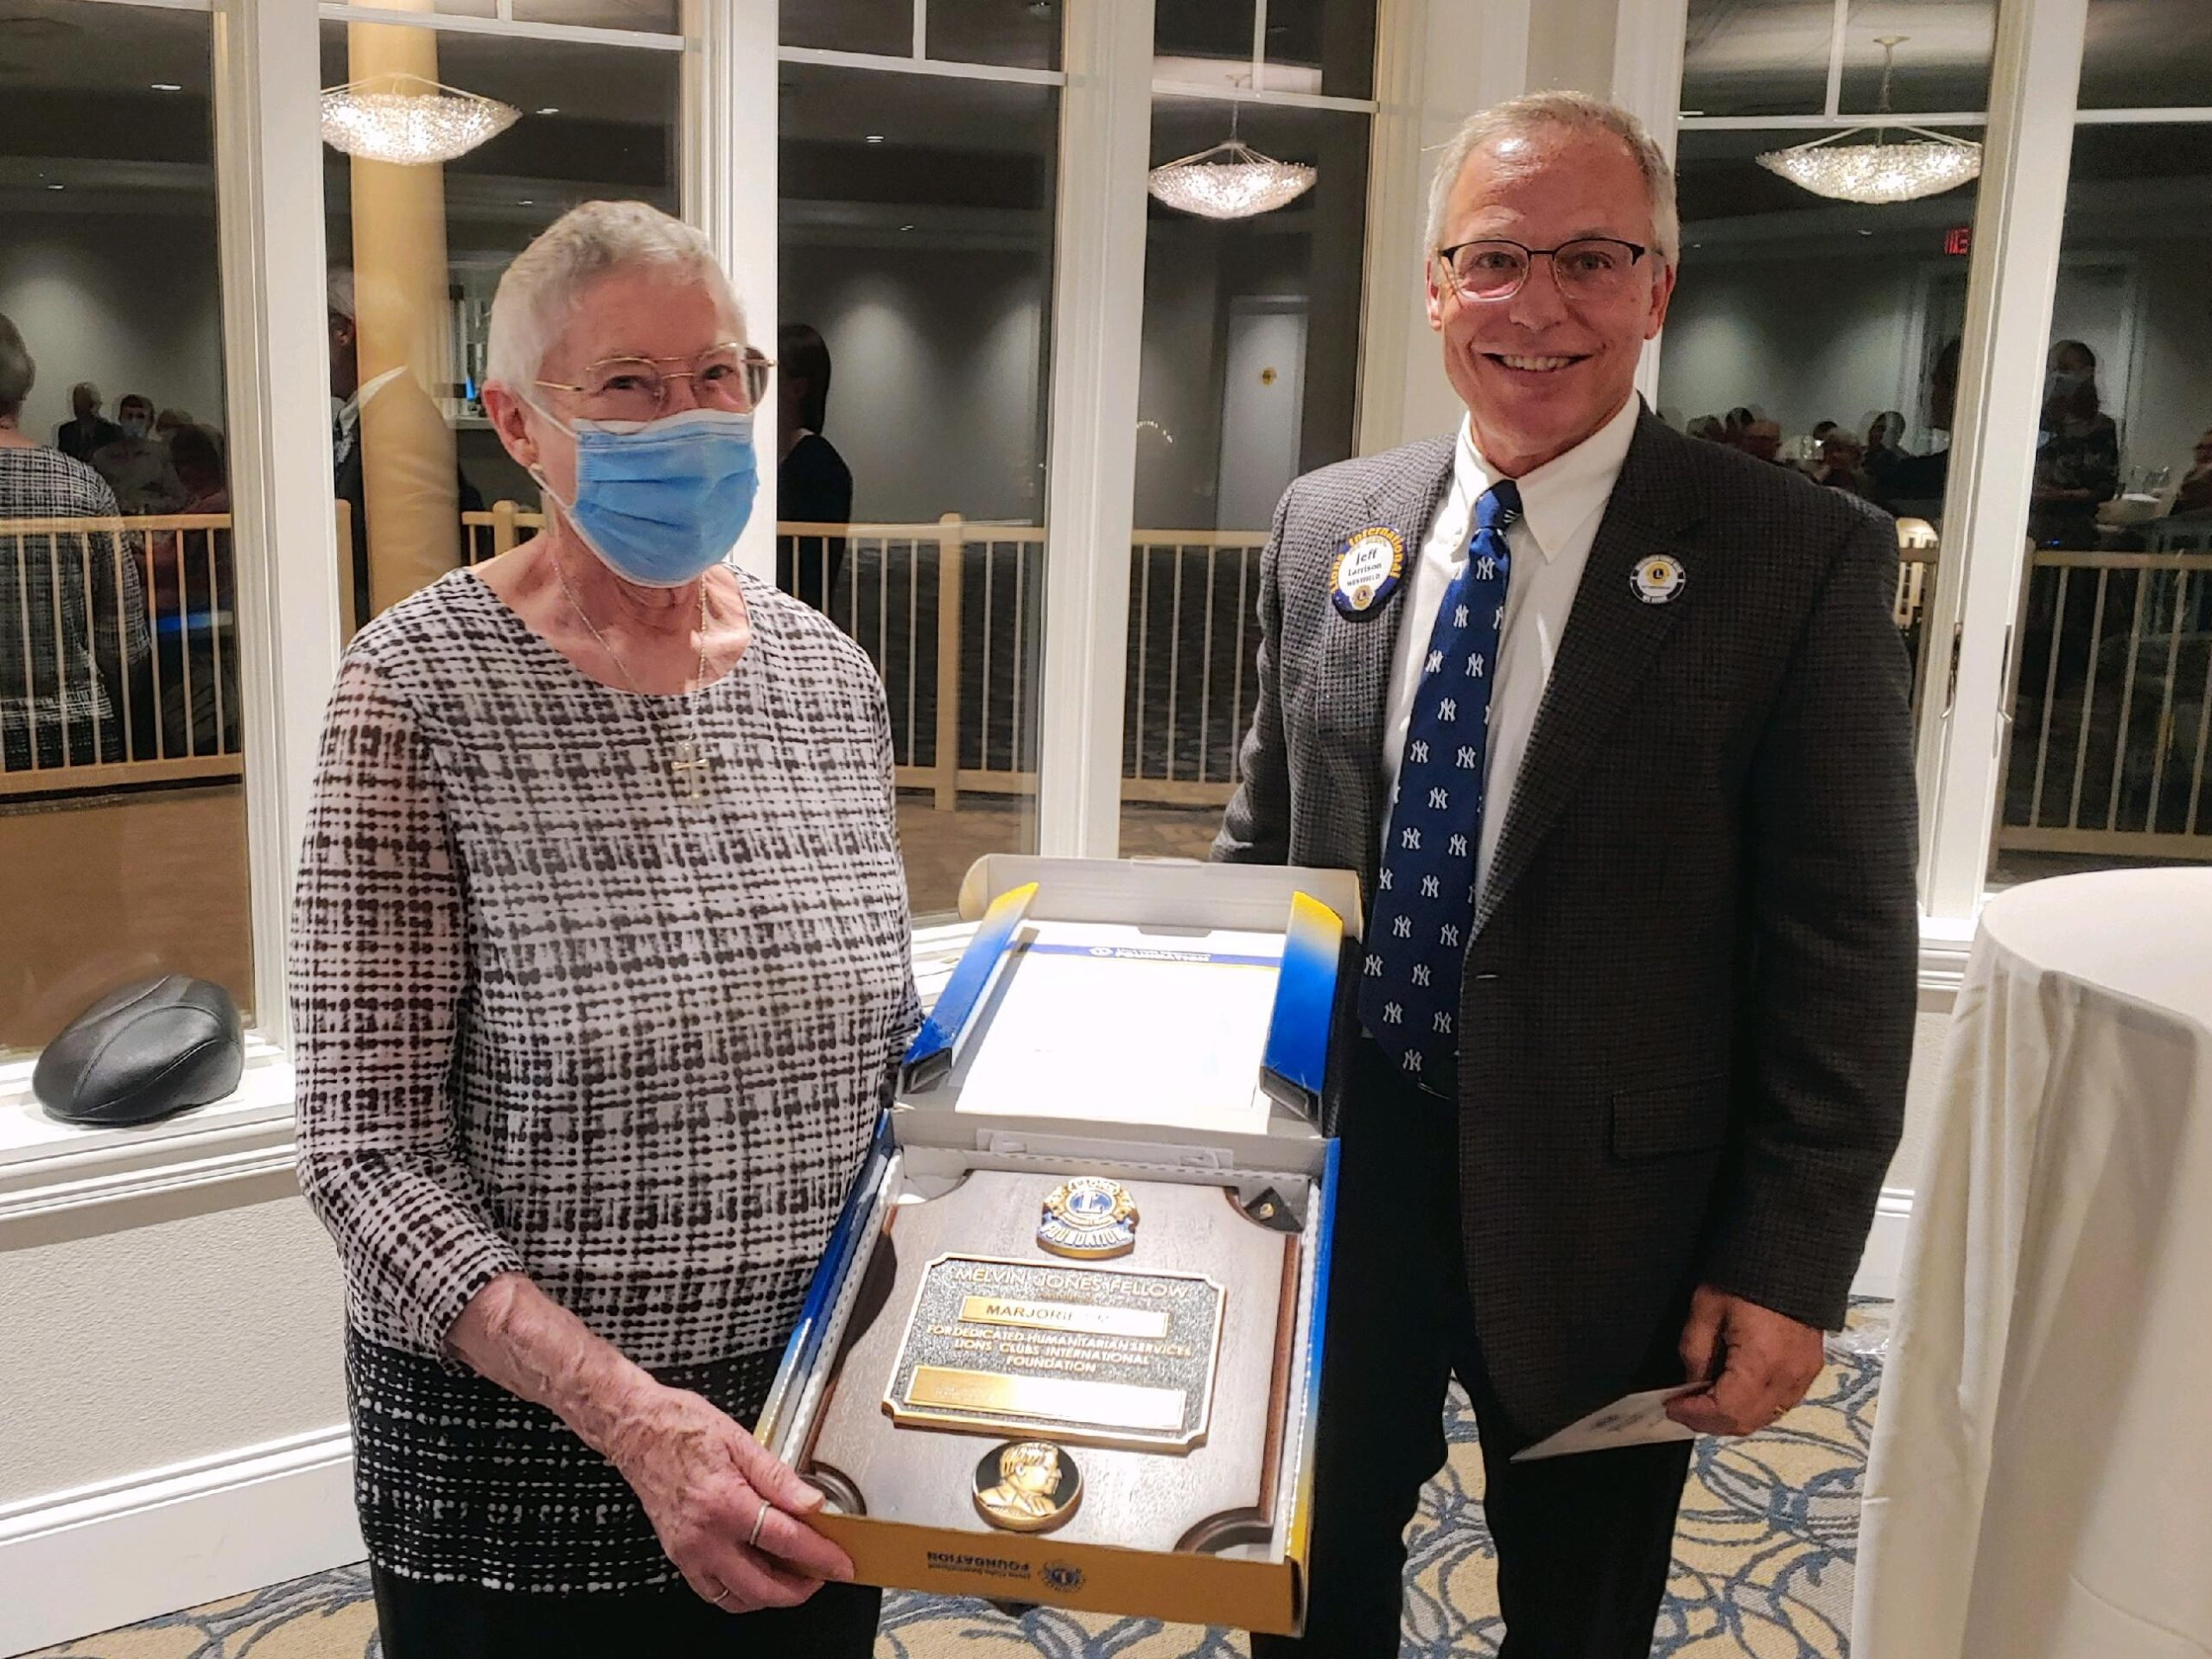 Margie Smith received one of the Lions Club's top honors